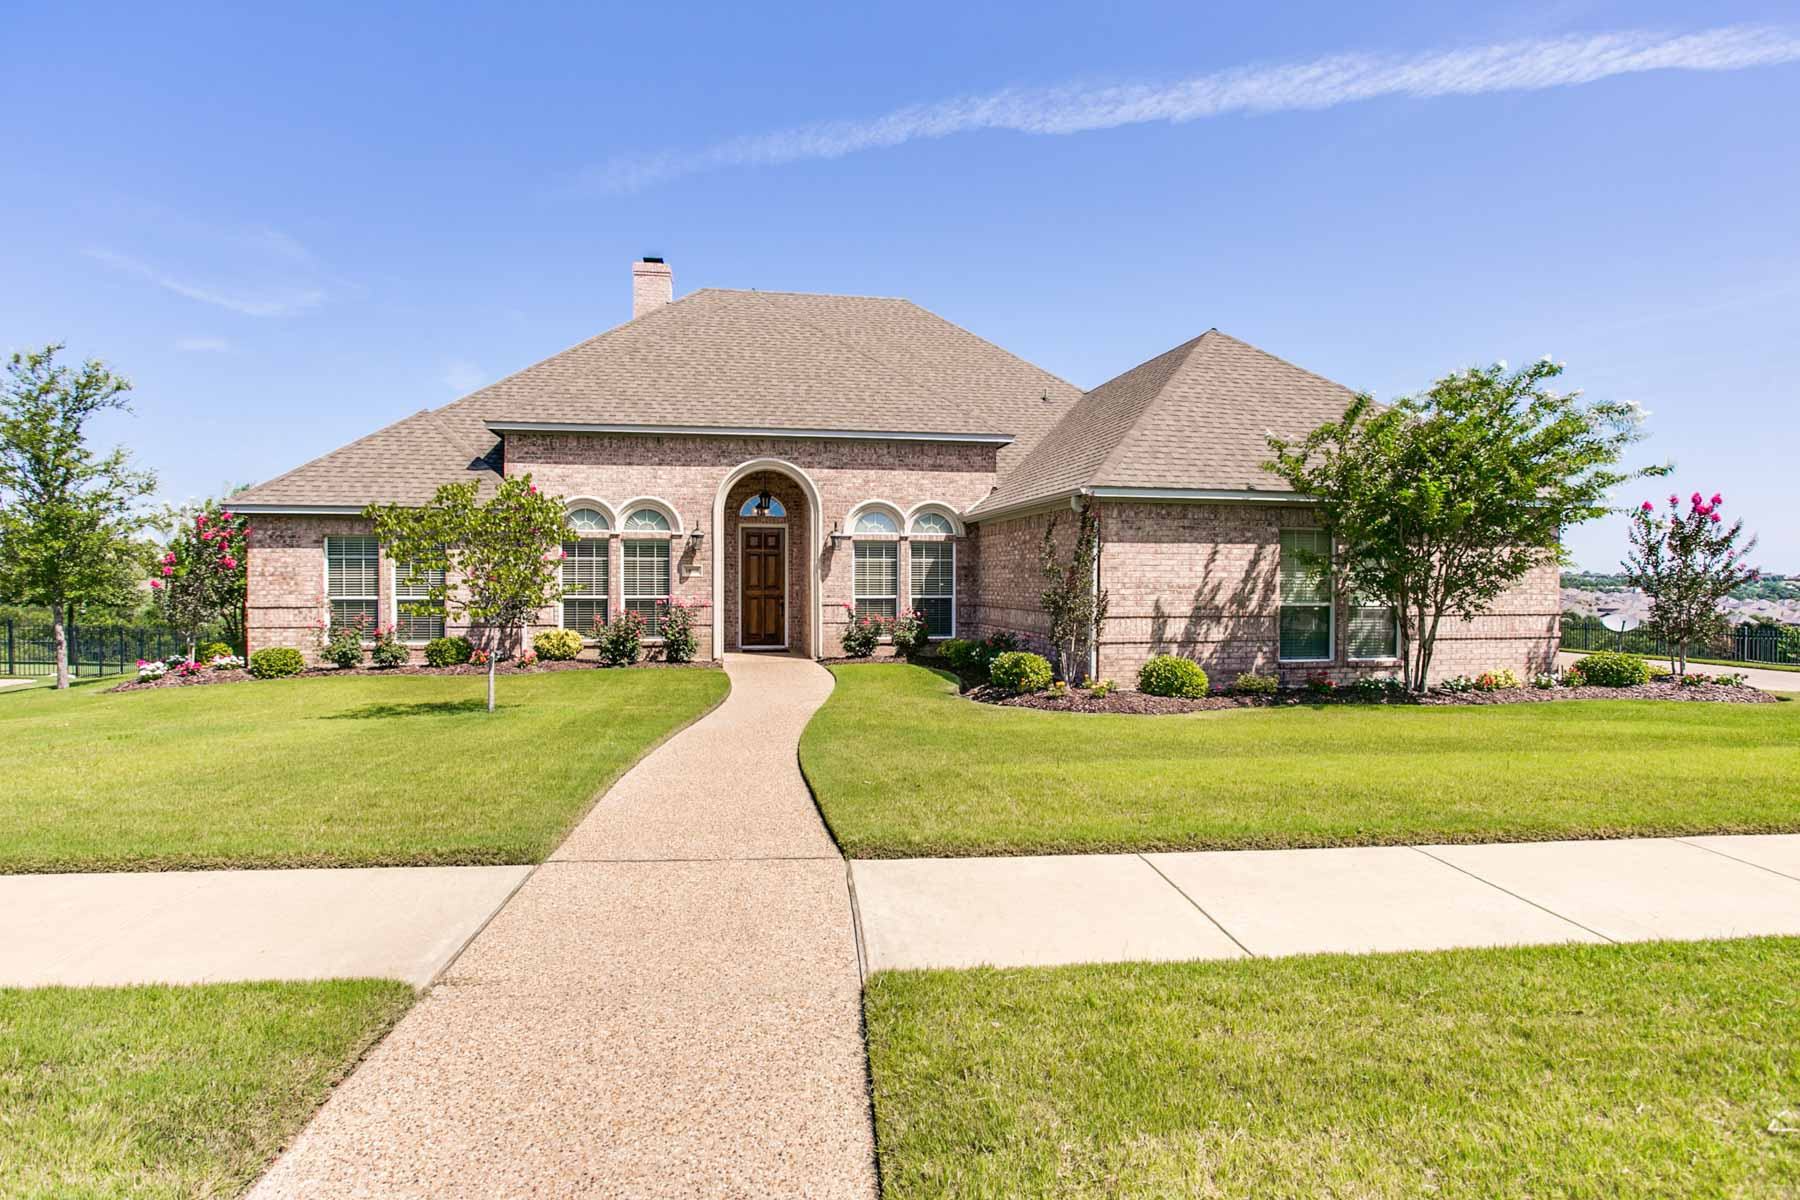 Single Family Home for Sale at One Story Hillview on Golf Course 10908 Hawkins Home Blvd. Benbrook, Texas, 76126 United States